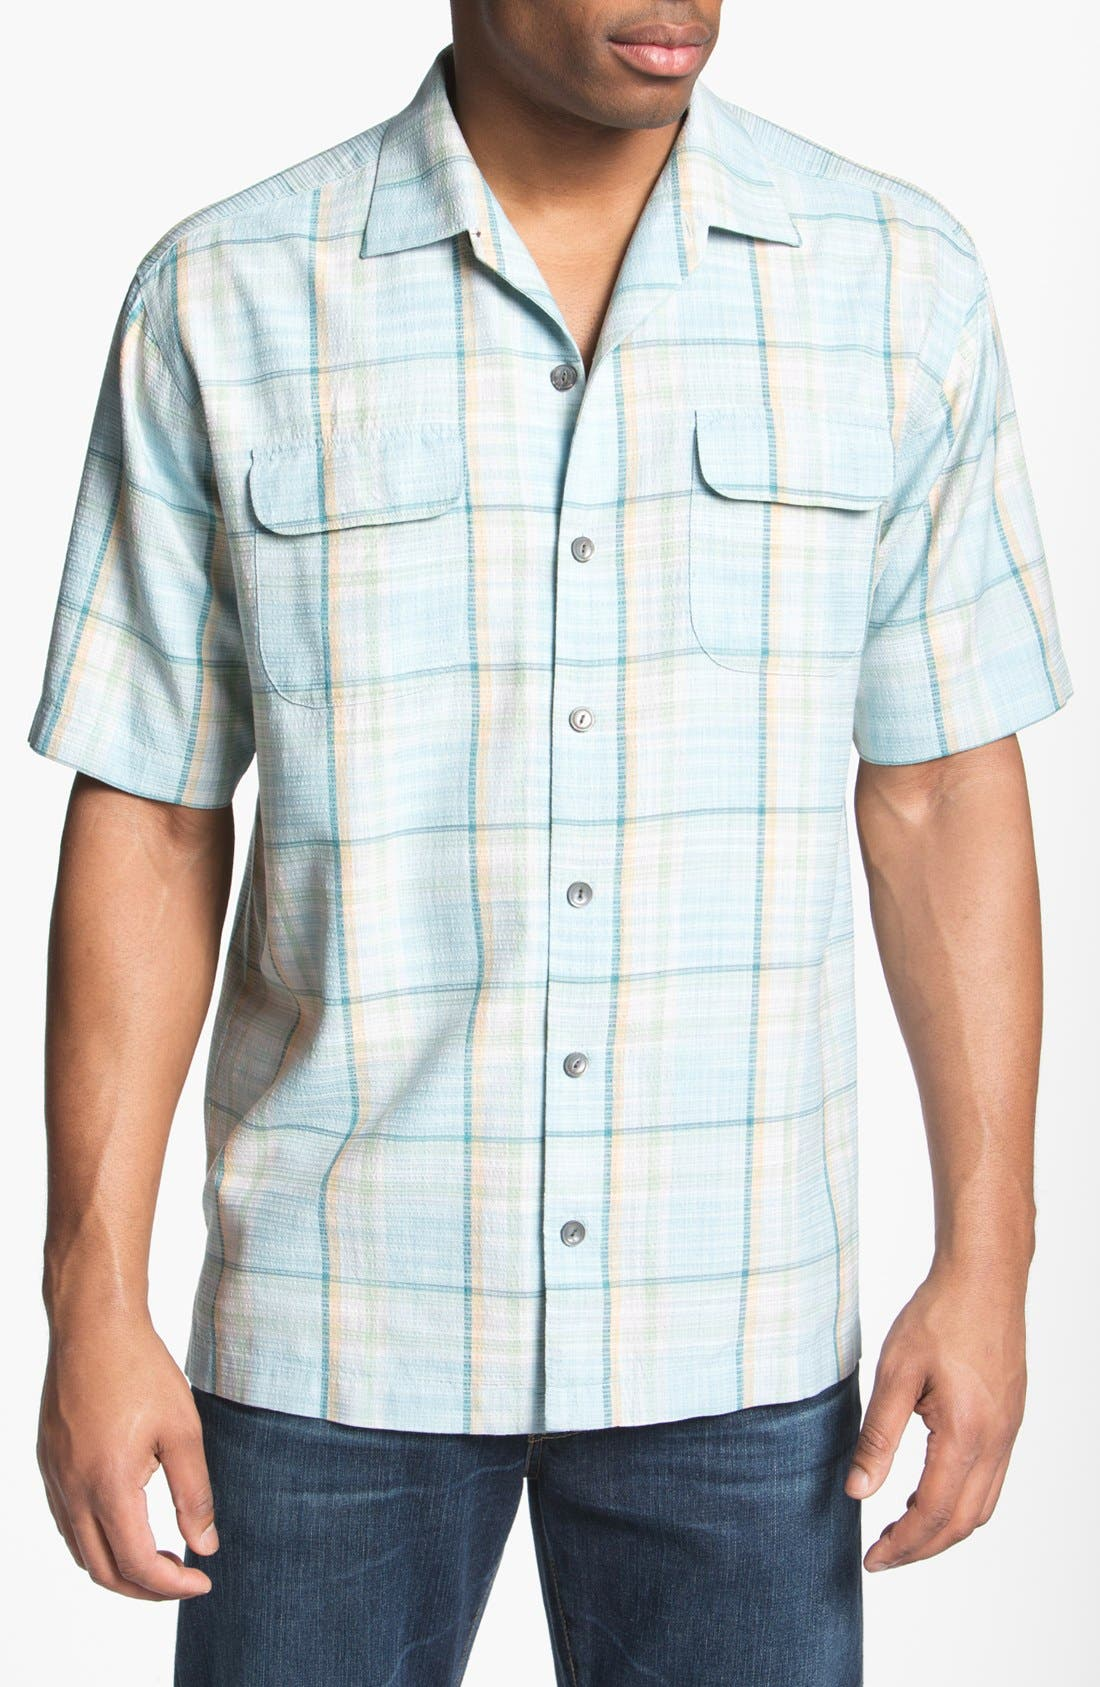 Main Image - Tommy Bahama 'Plaid Manners' Campshirt